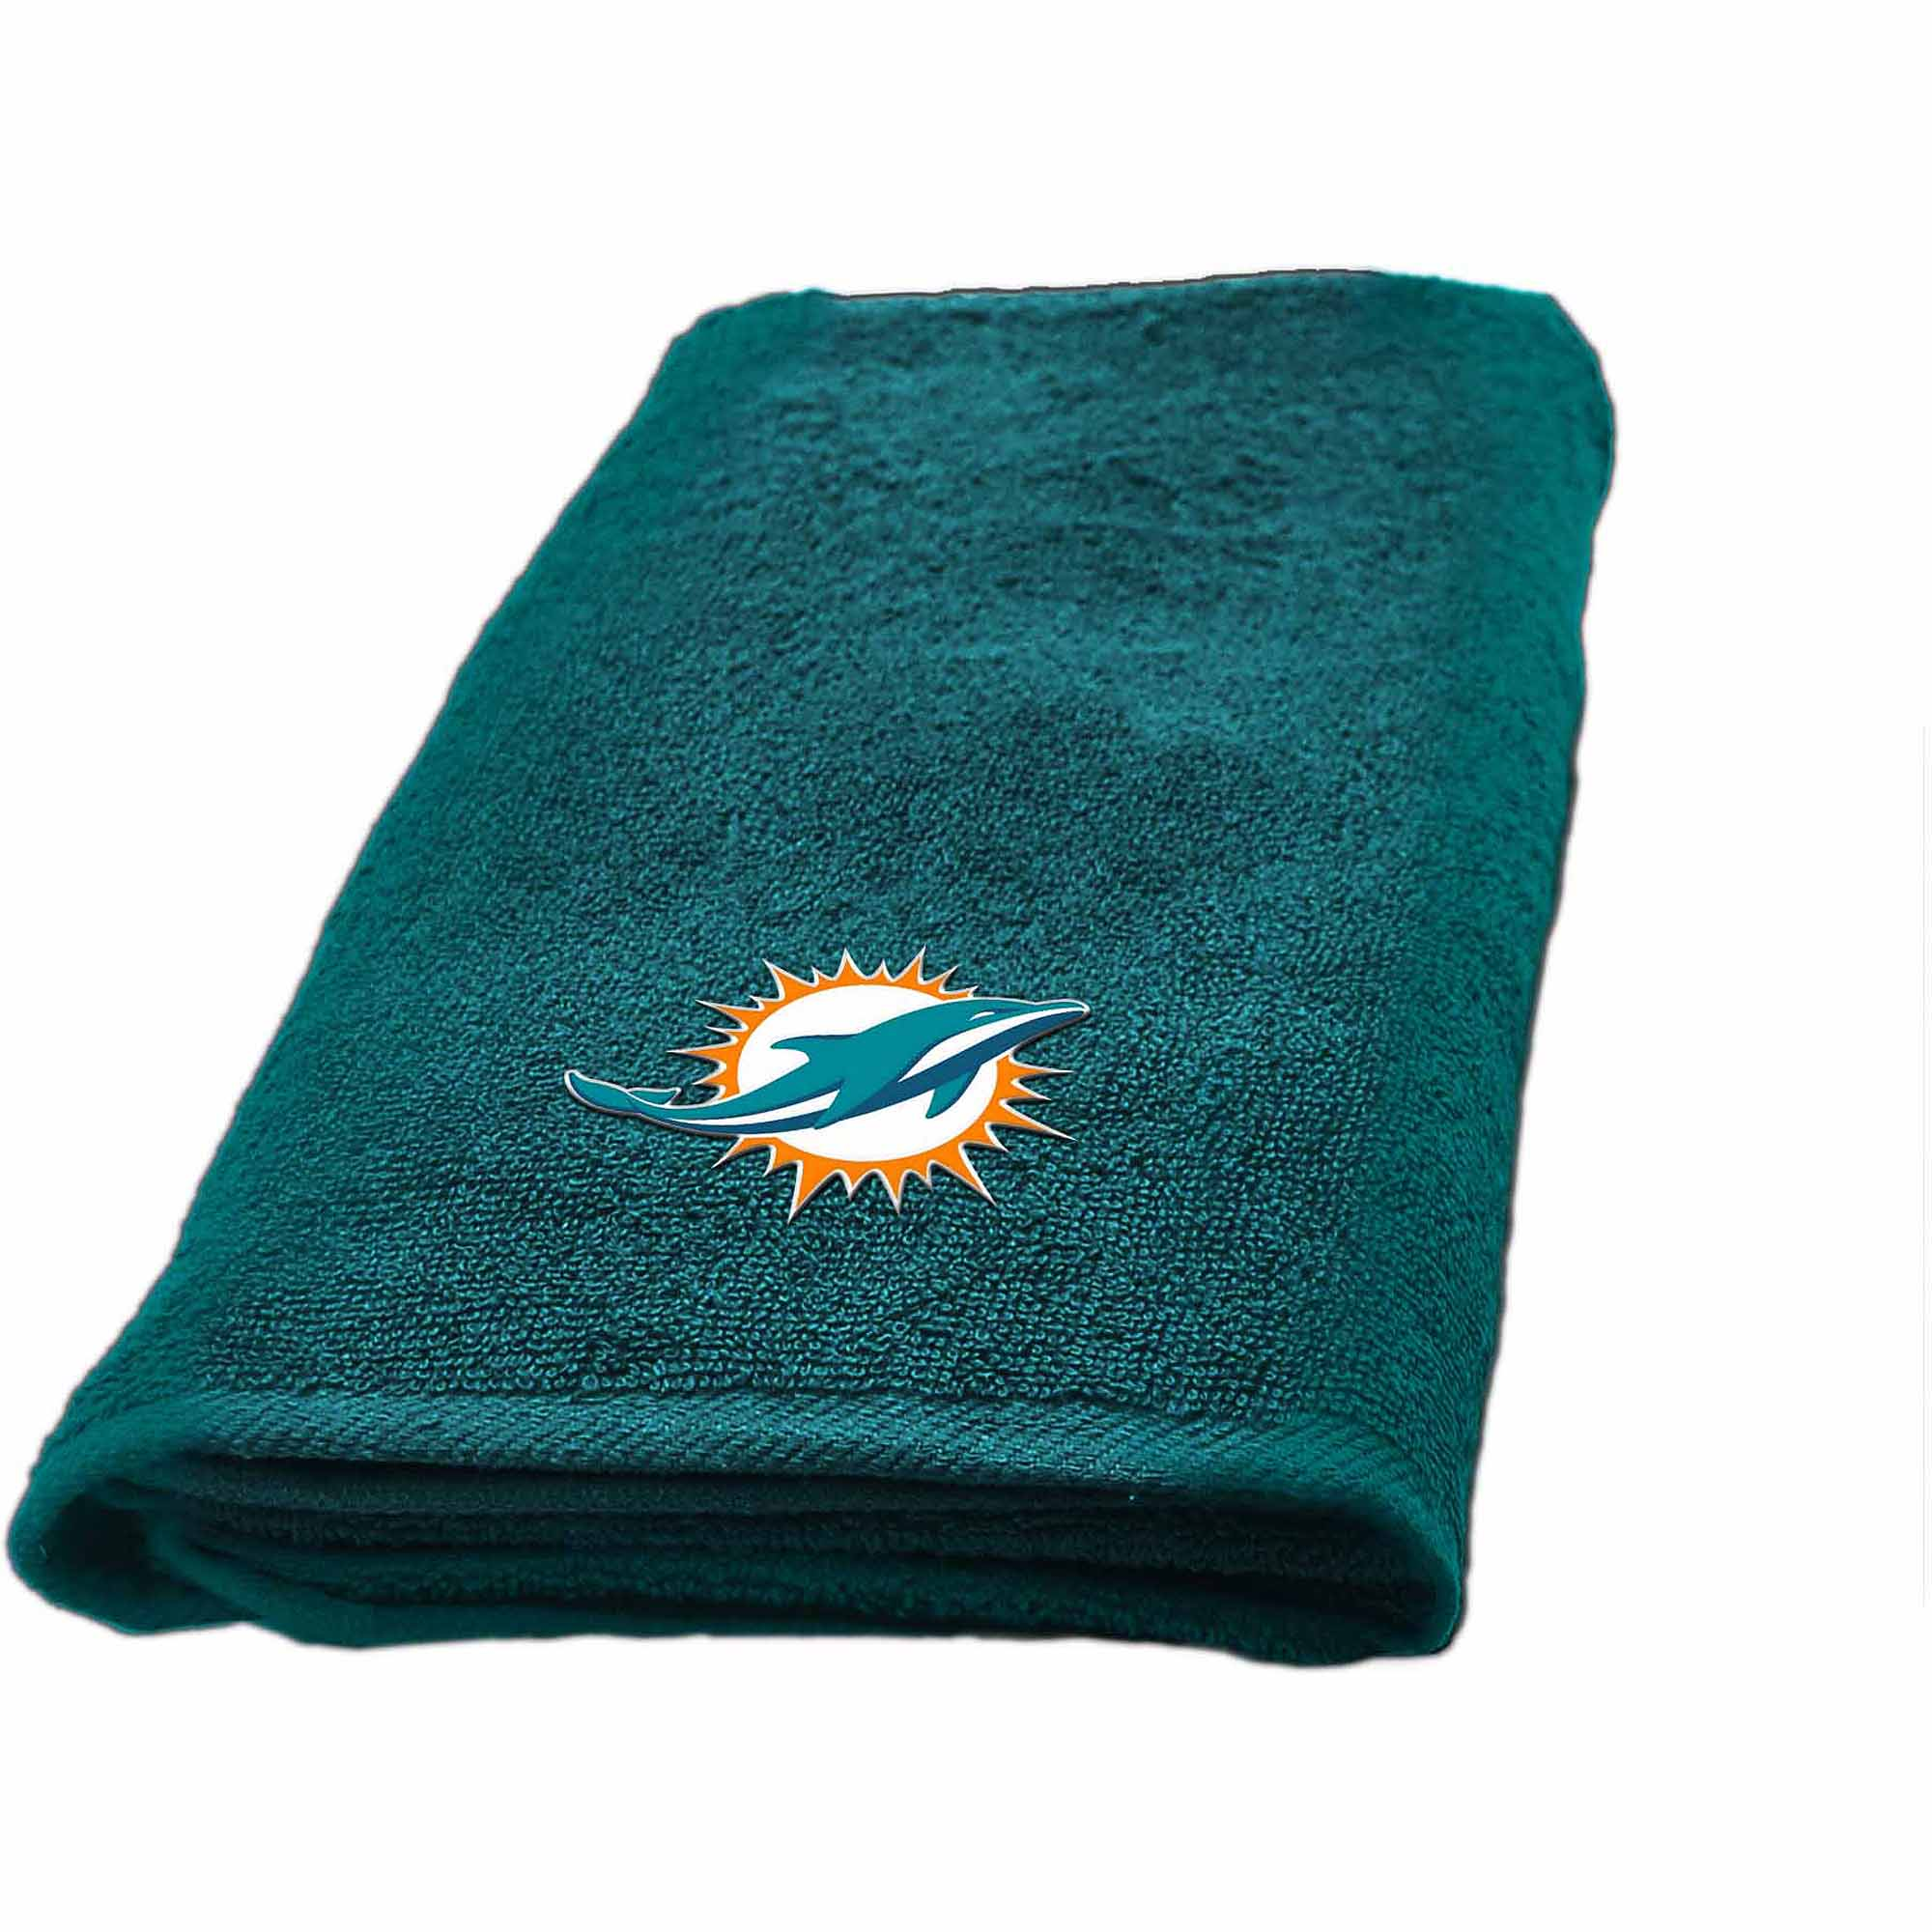 NFL Miami Dolphins Hand Towel